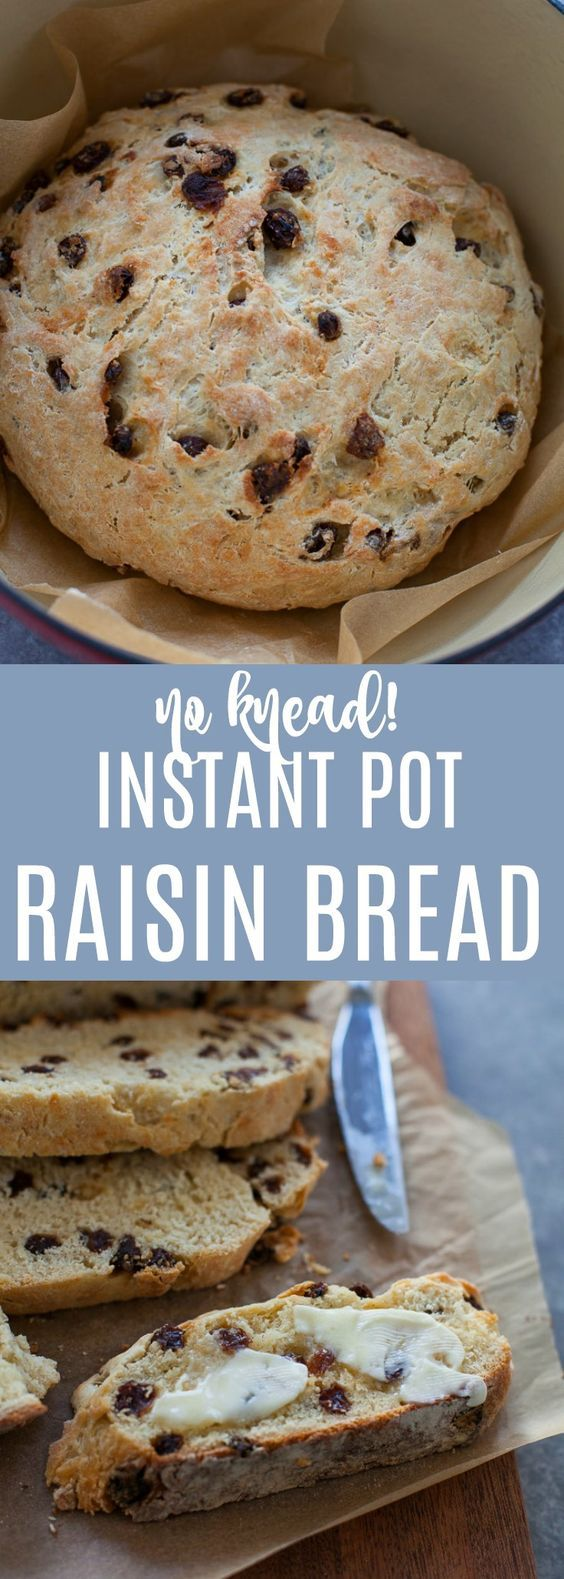 Use the instant pot to help your bread rise in just a few hours, no kneading required! This Instant Pot Raisin Bread is an old family recipe that I tweaked to be able to make in a fraction of the time.